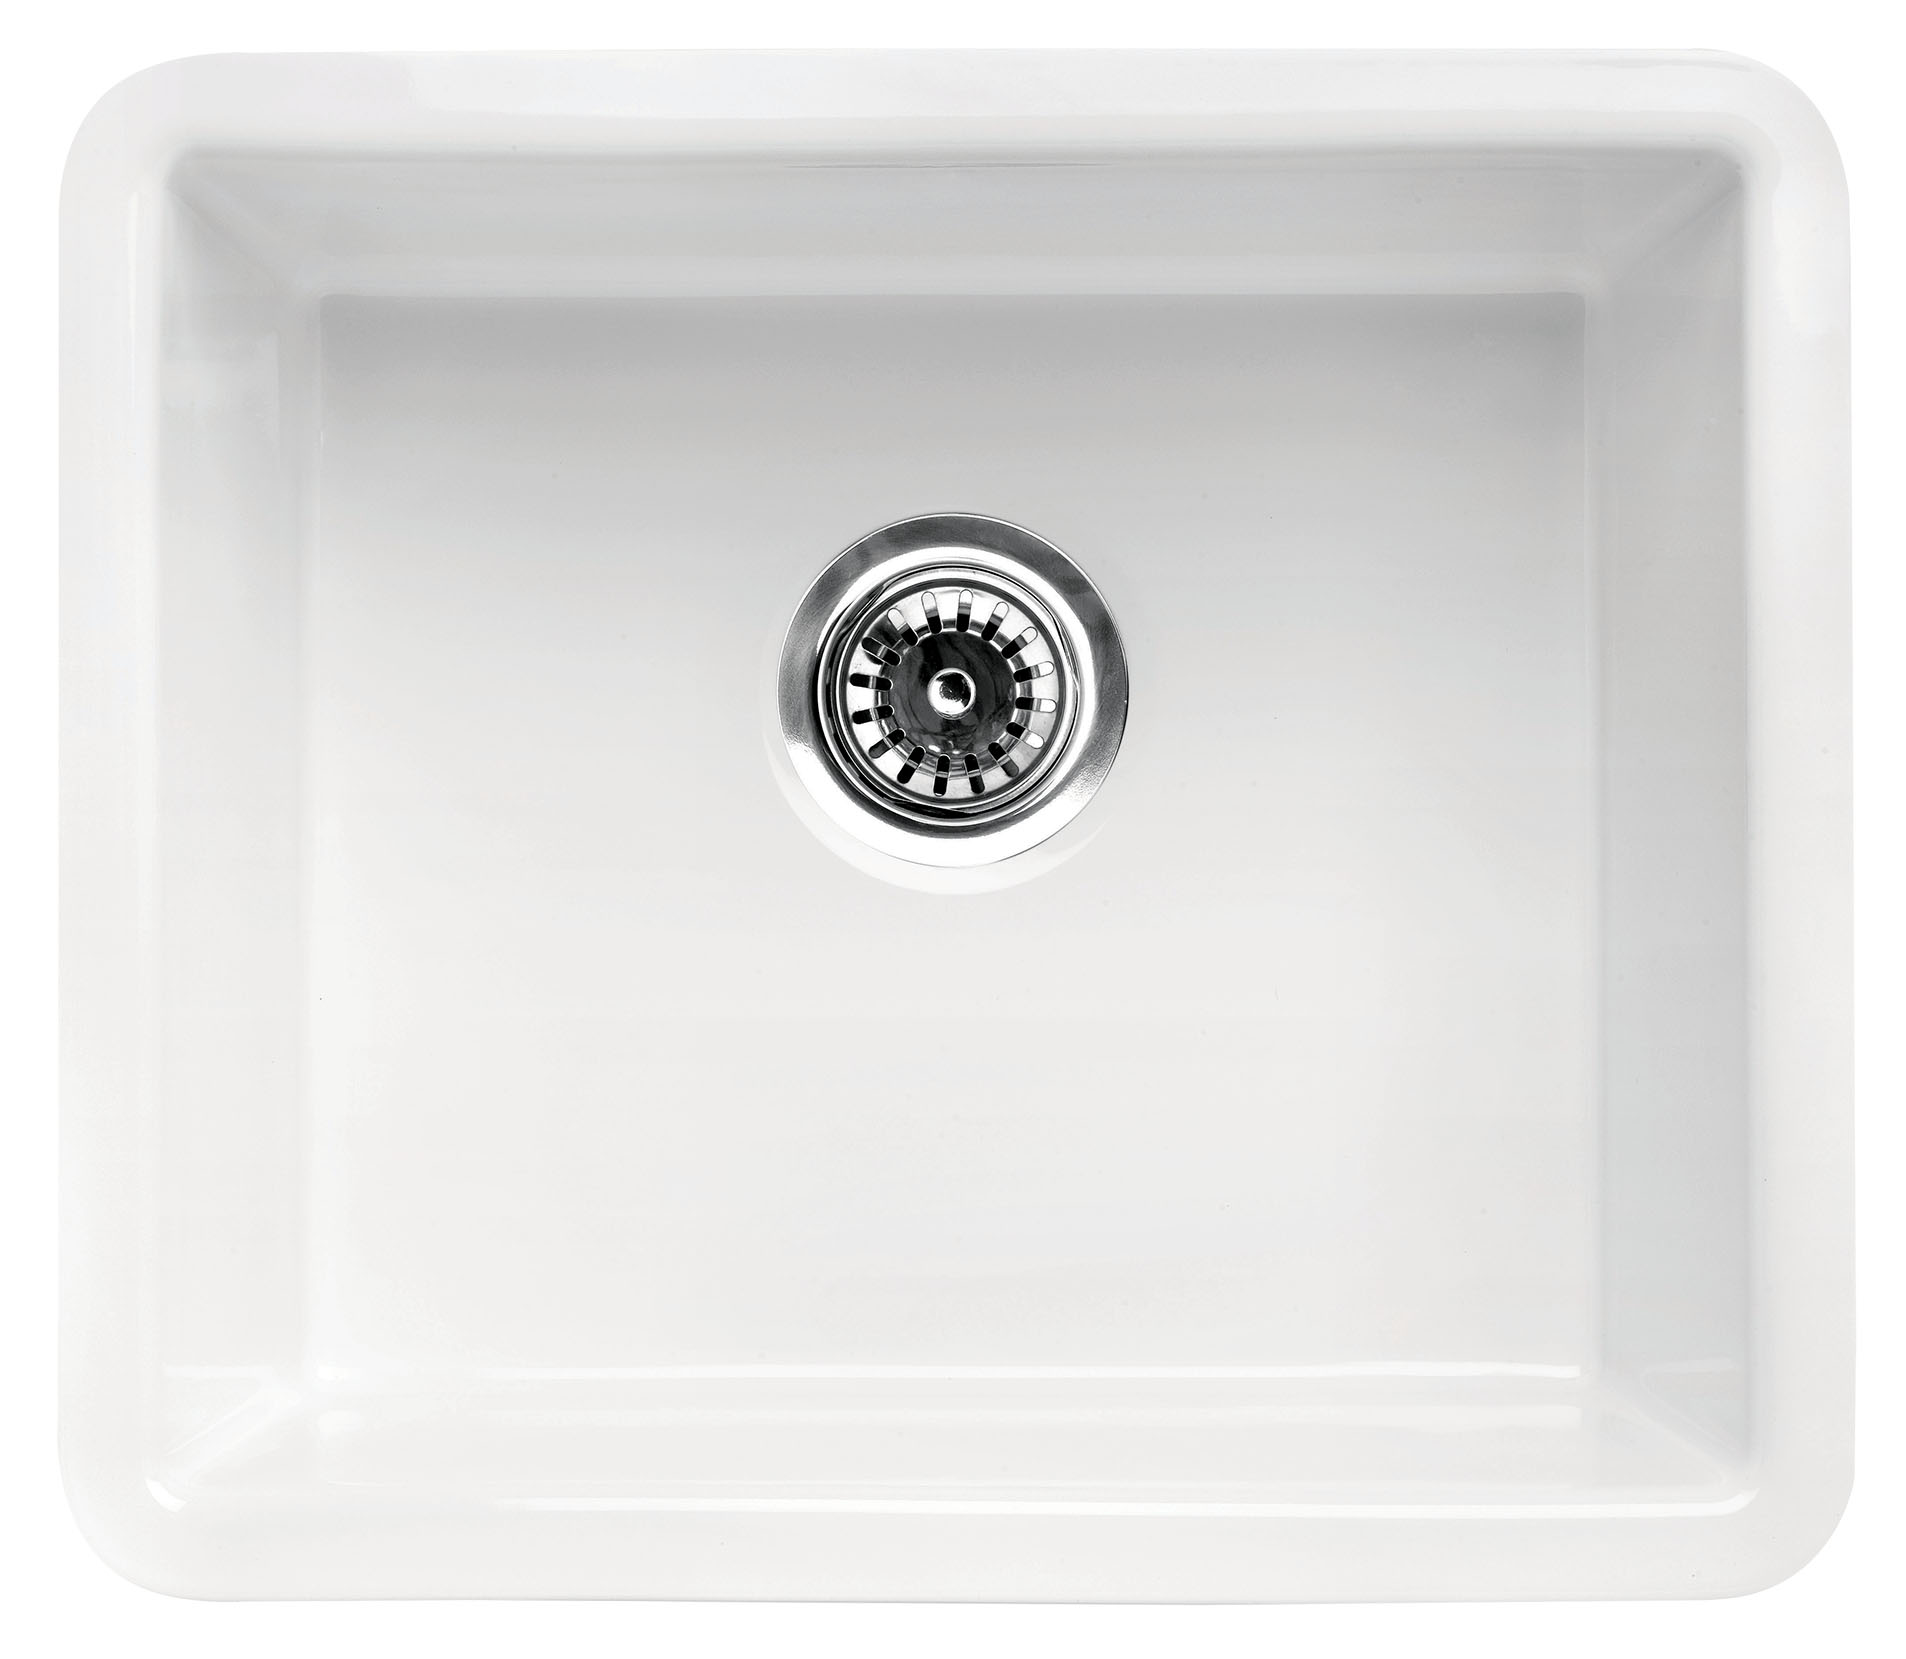 Alfi Brand Ab2017 20 White Single Bowl Fireclay Undermount Kitchen Sink Walmart Com Walmart Com